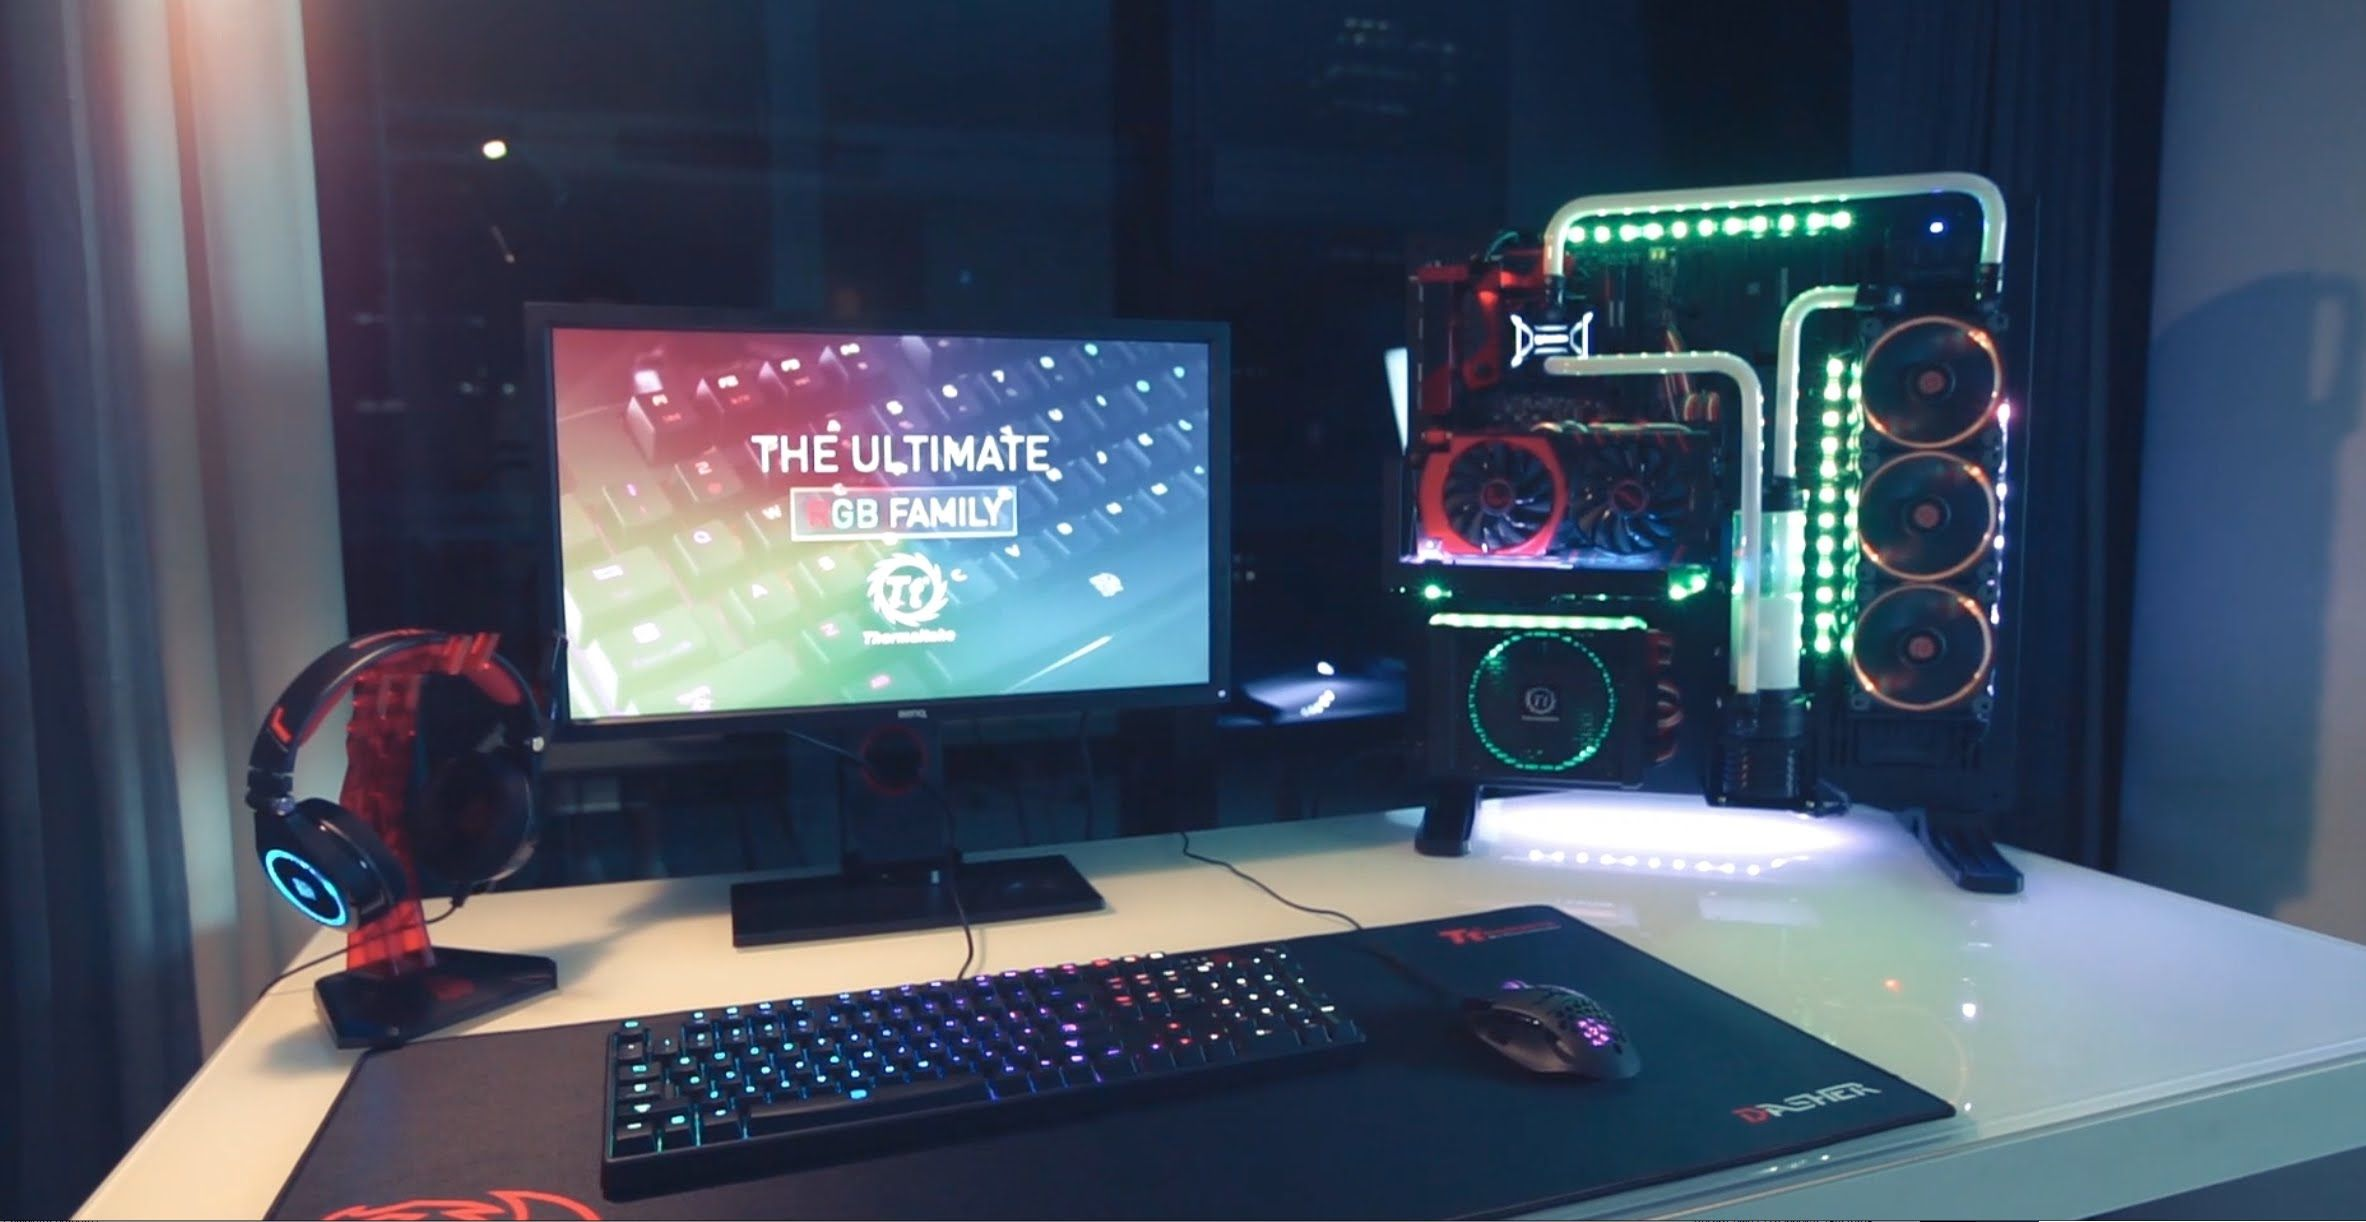 Thermaltake RGB Family - Full thermaltake RGB Core P5 Setup! + Give away in description - YouTube